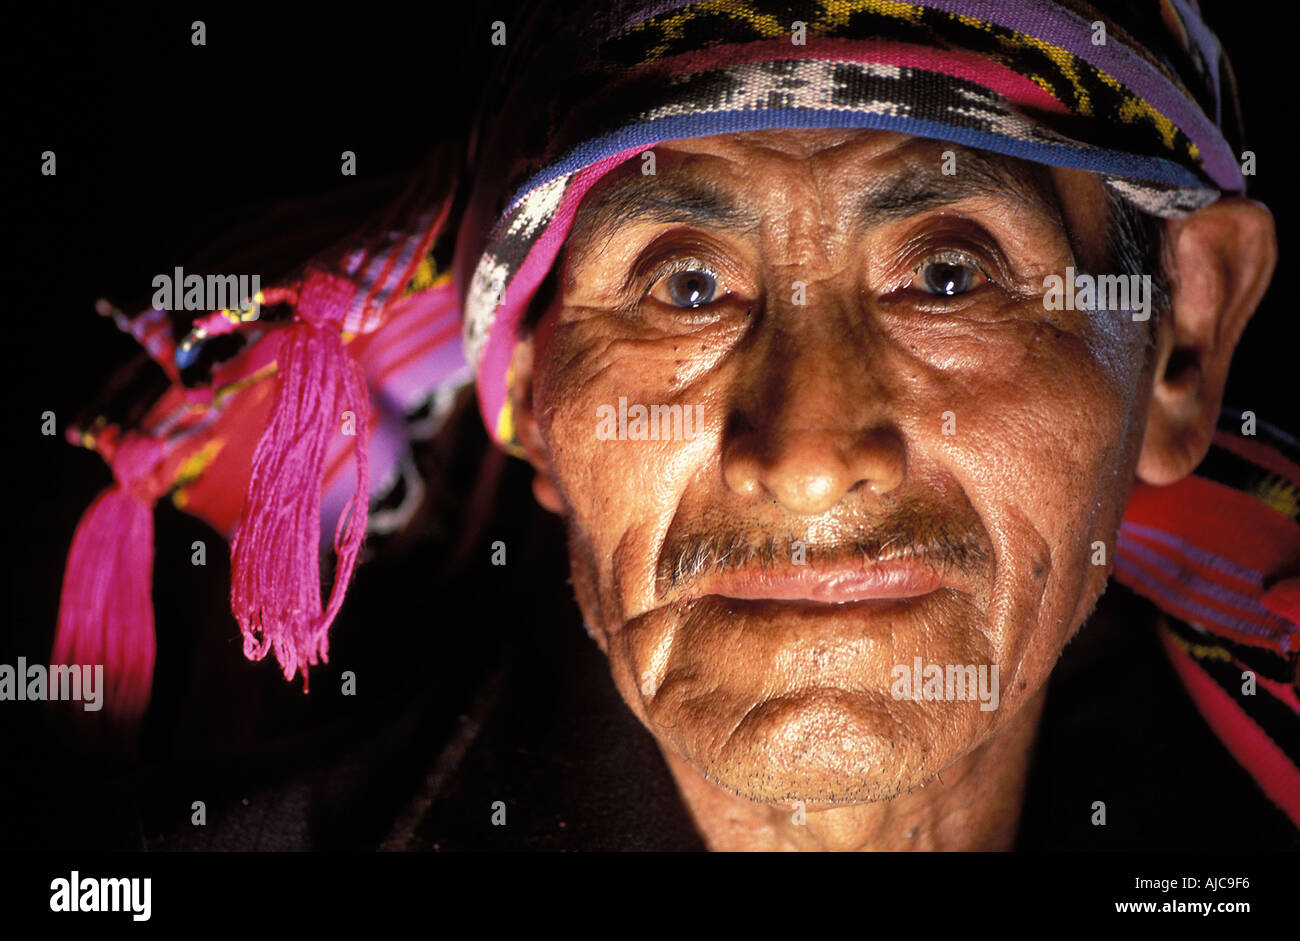 Religious Maya elder wearing a woven headcloh symbol of his authority Santiago Atitlan Guatemala - Stock Image